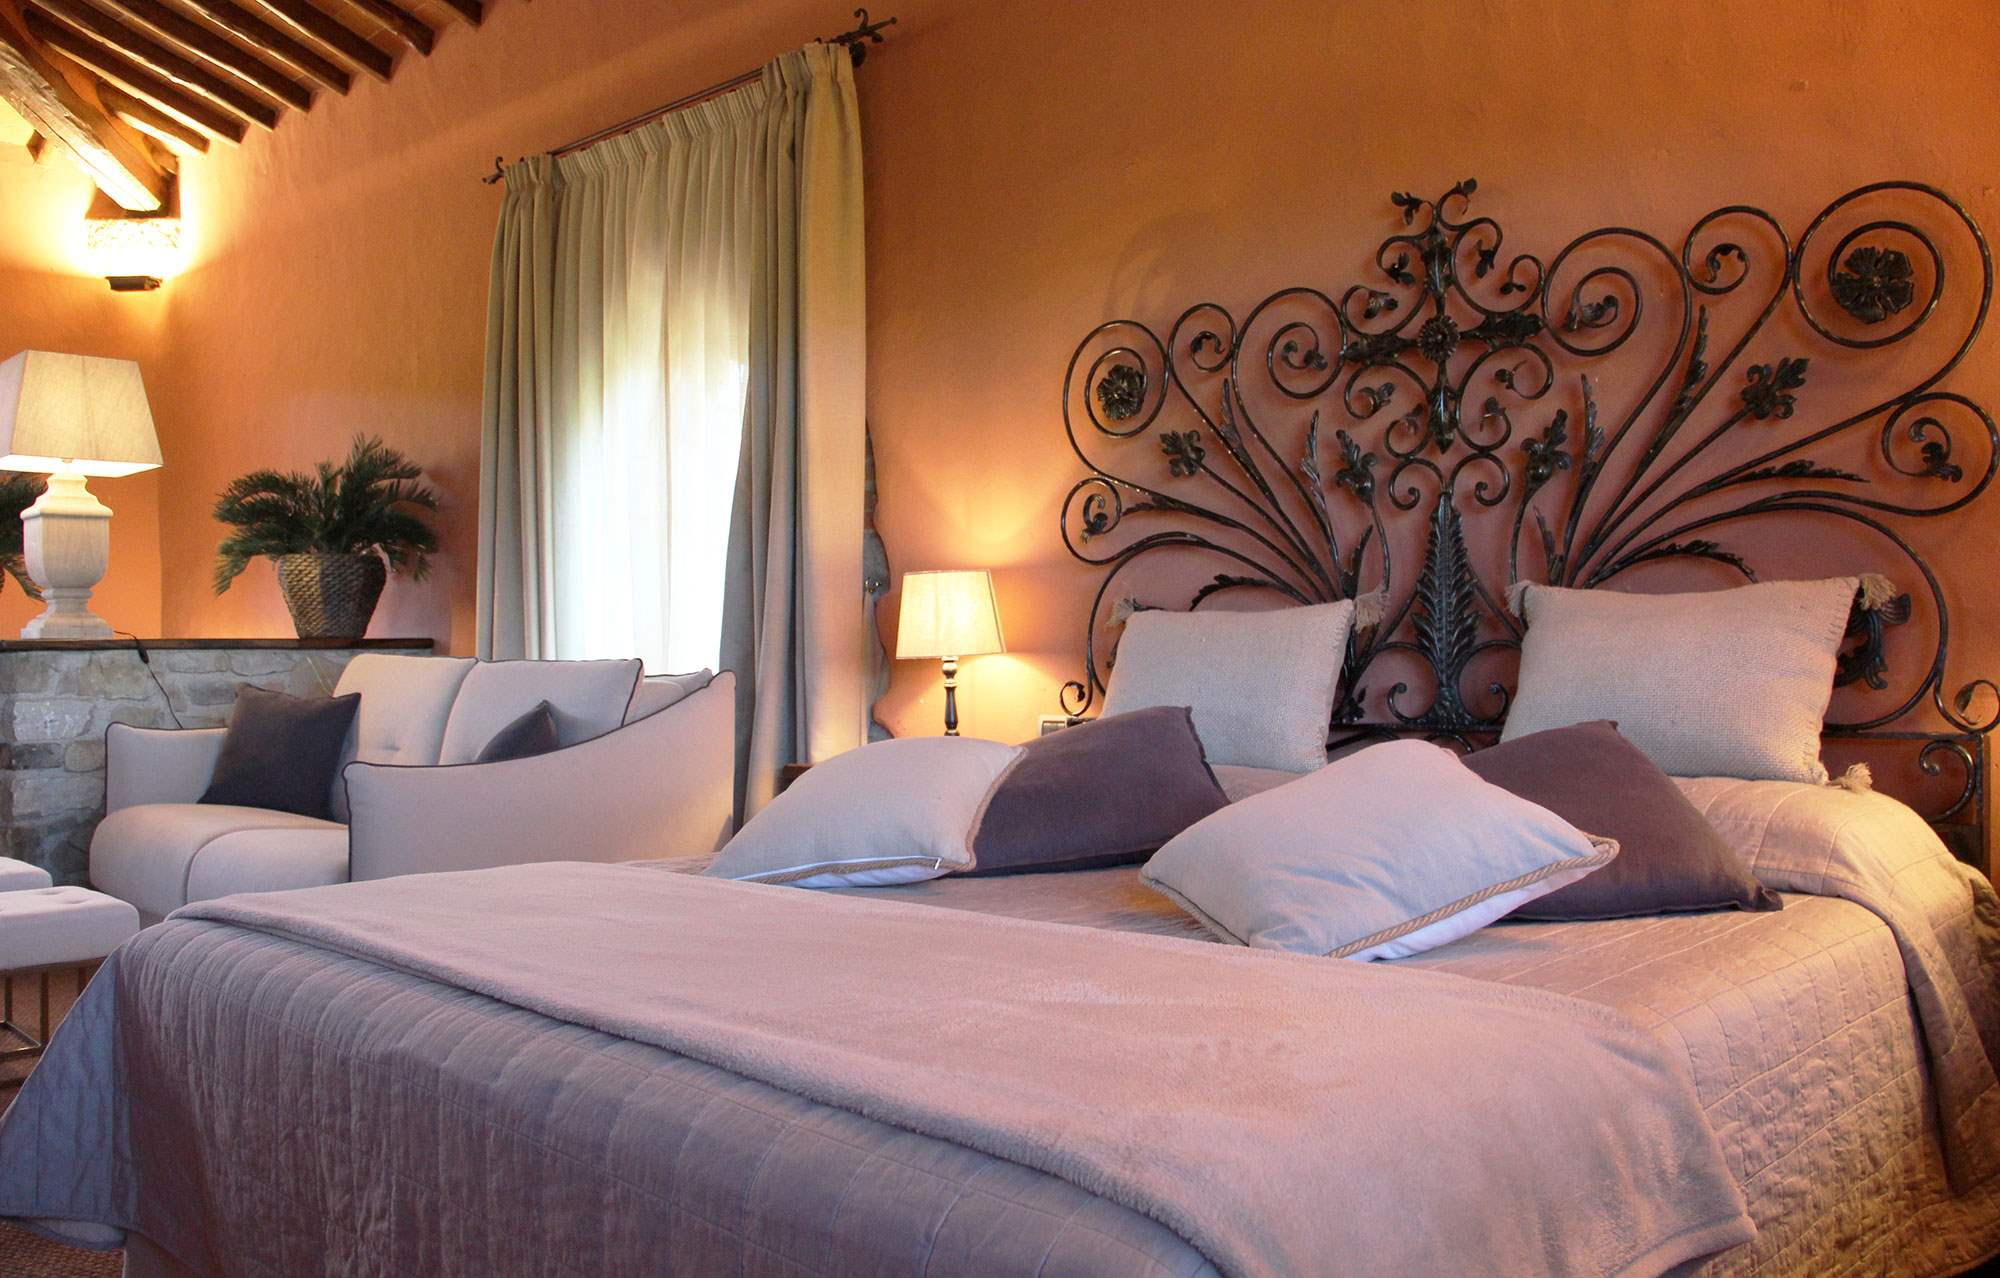 Villa Tuscan, 6 (+2), 3 bedroom villa in Chianti & Countryside, Tuscany Photo #24